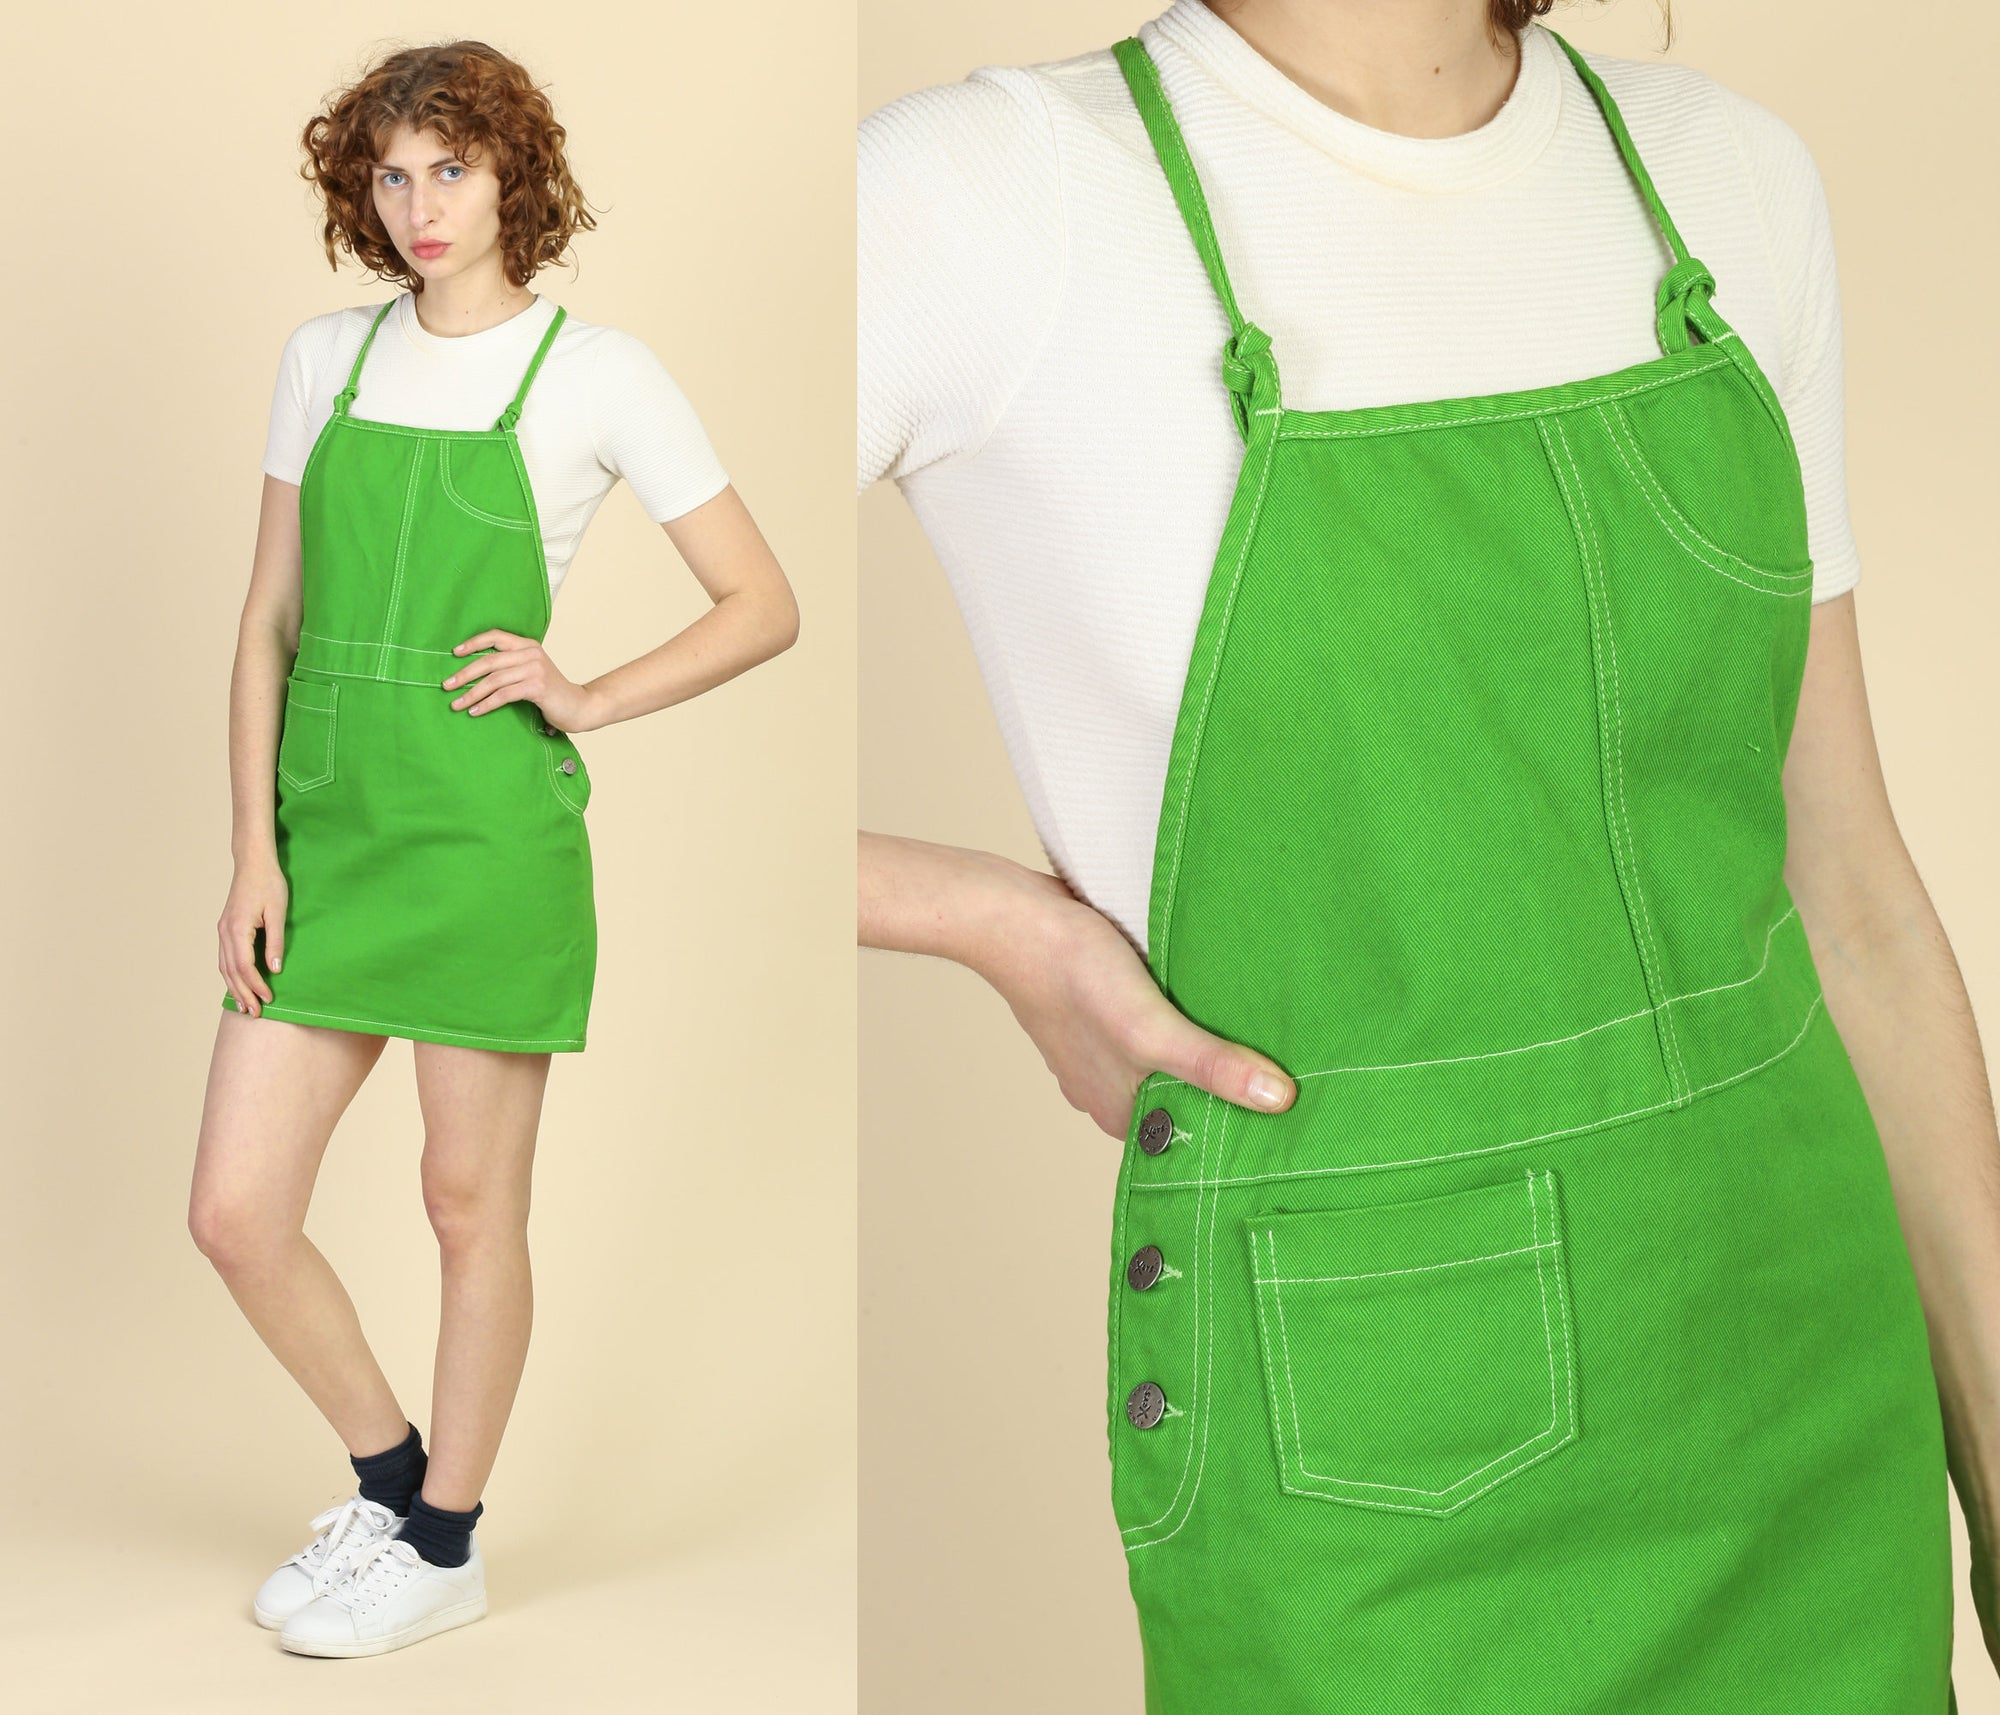 90s Kelly Green Denim Pinafore Dress, Deadstock - Small, Medium, Large